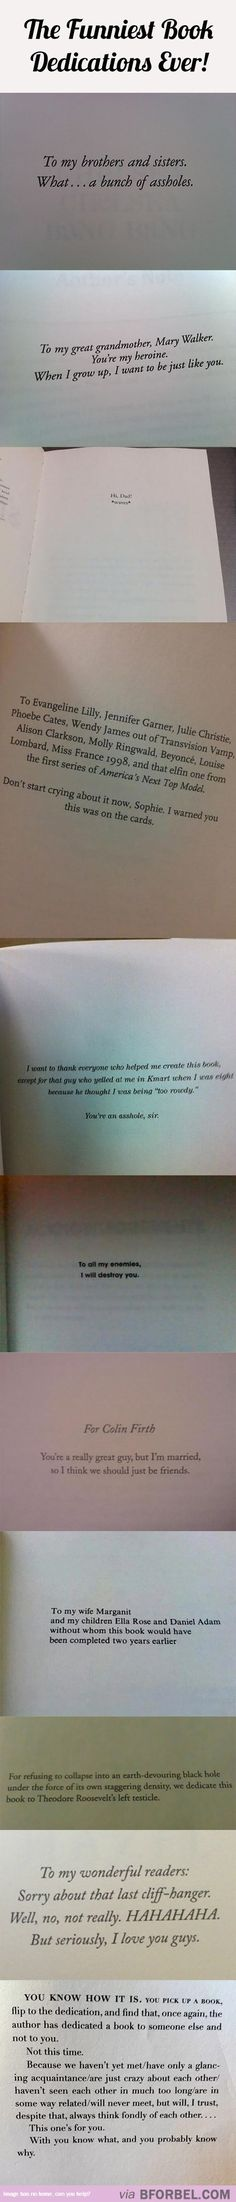 11 Of The Funniest Book Dedications Ever…